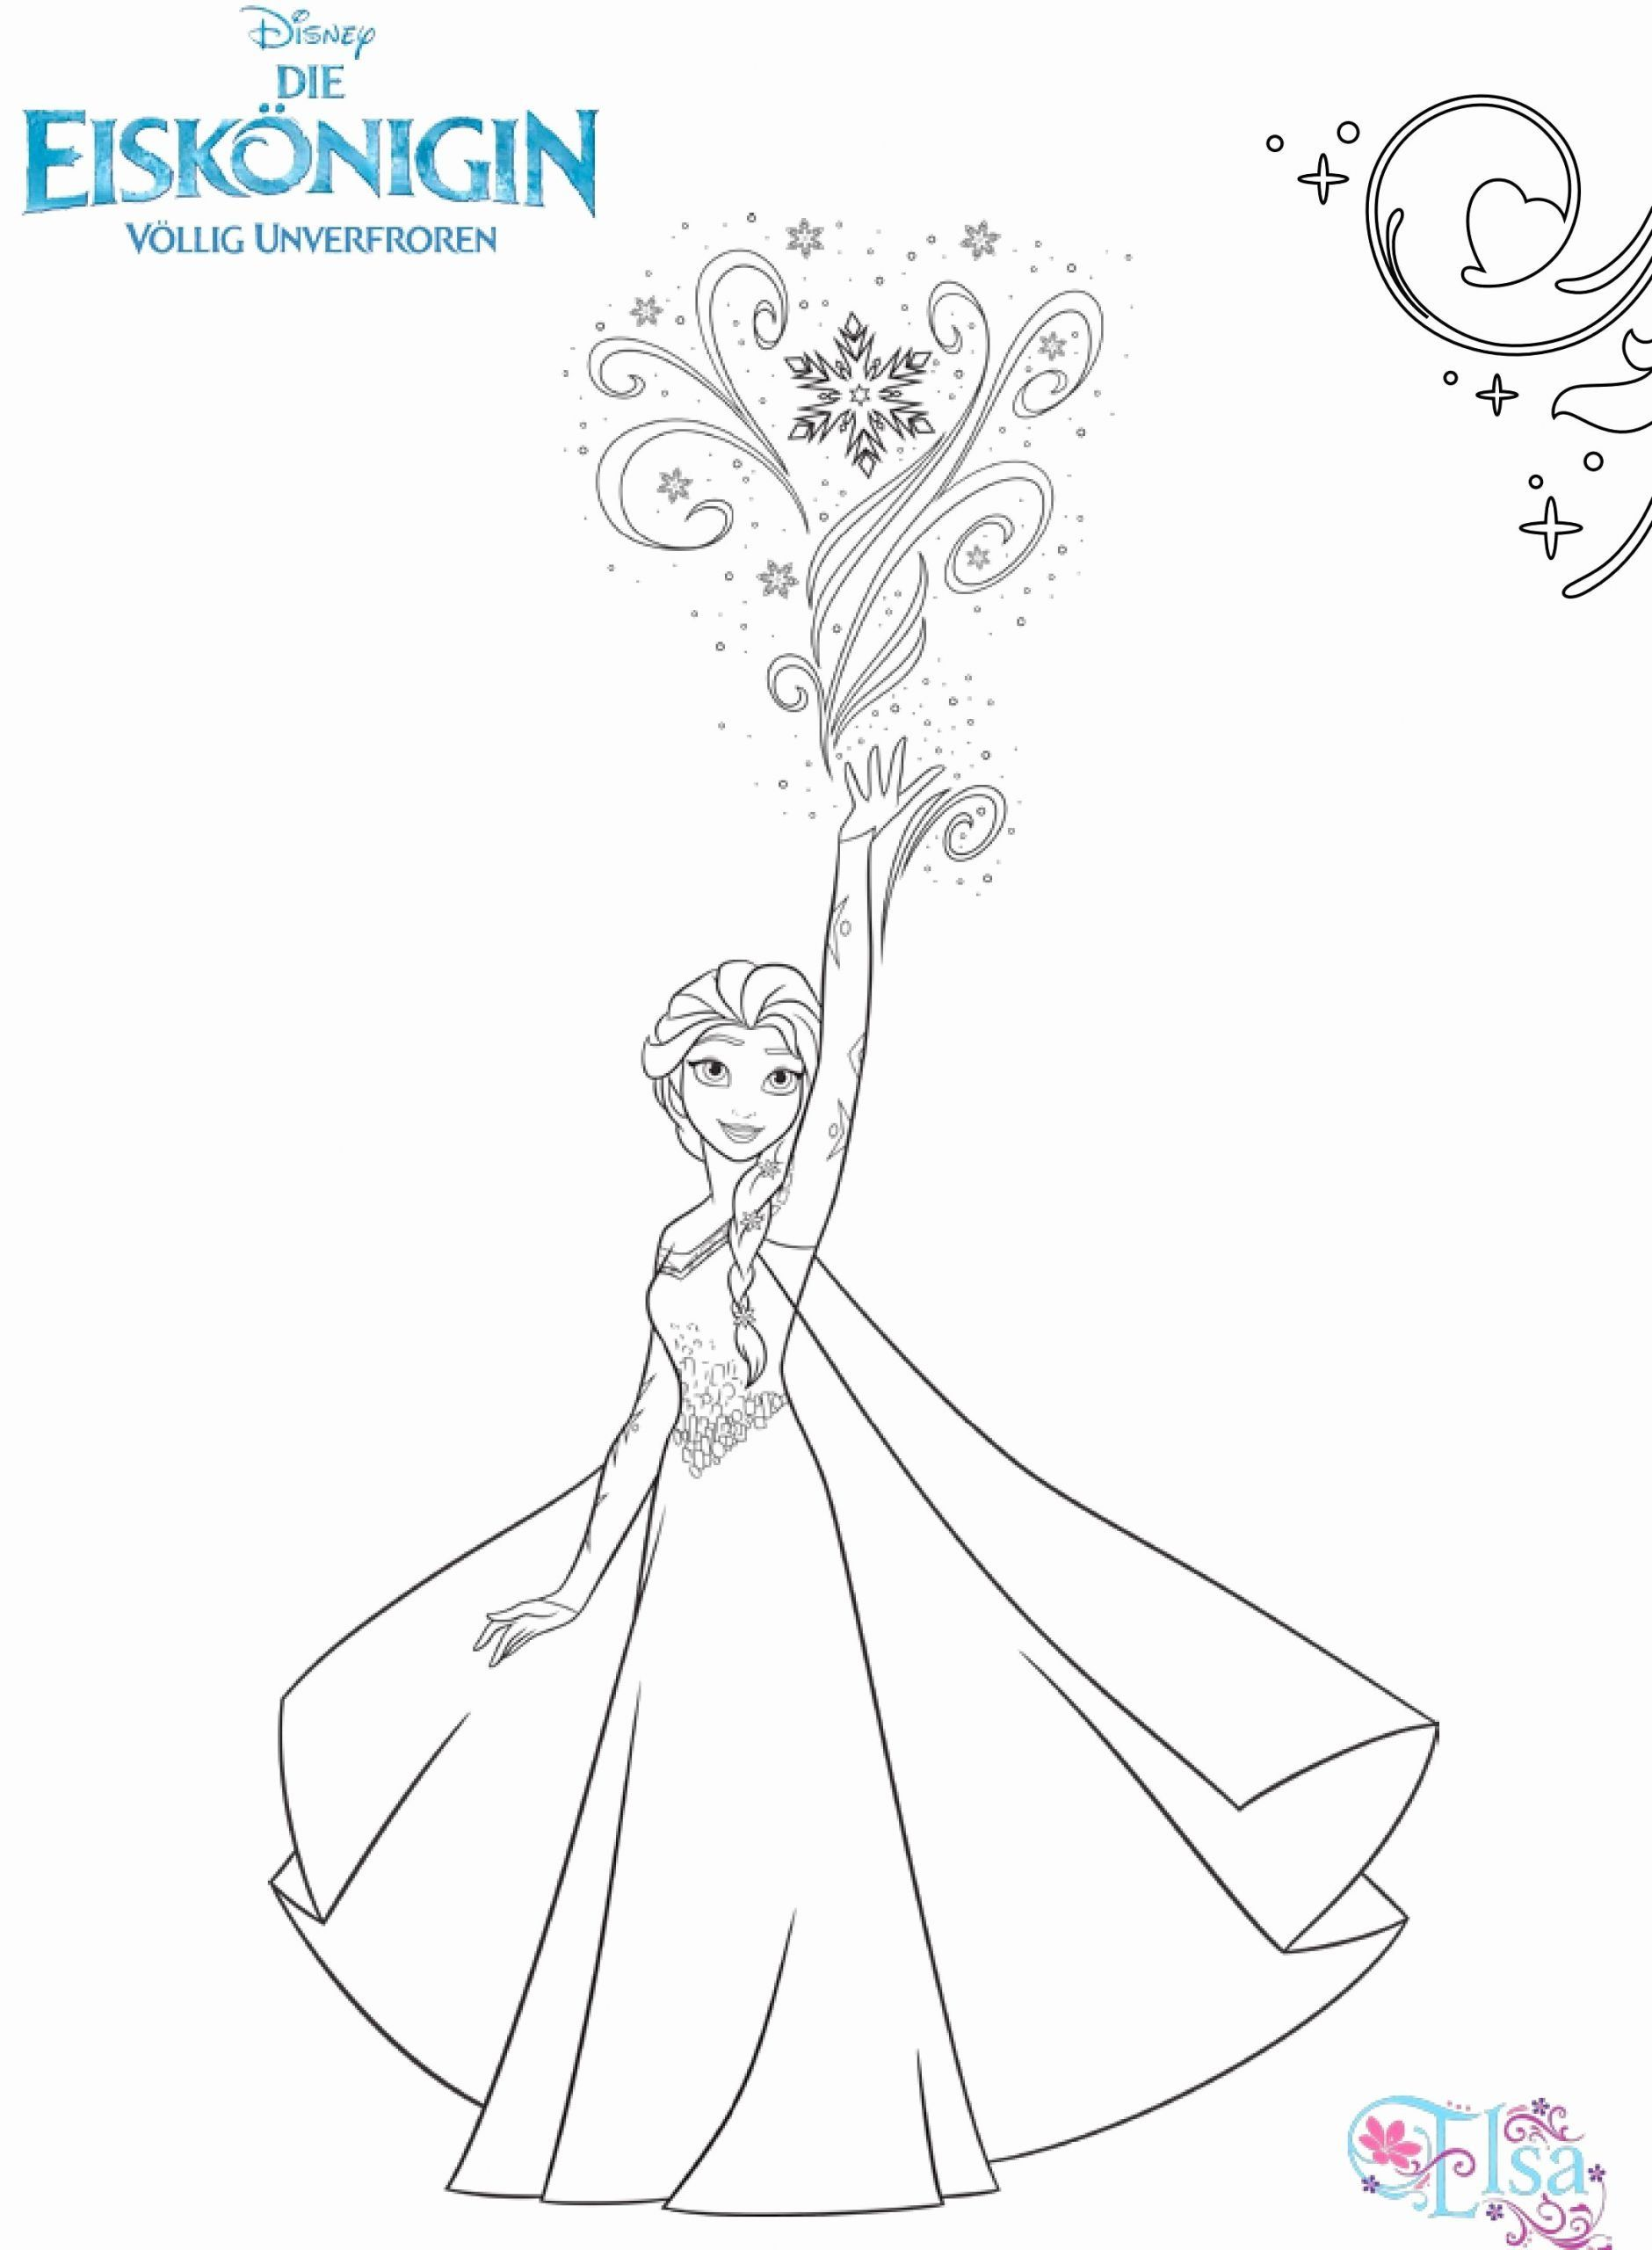 Flower Girl Coloring Books Beautiful 13 Beste Ausmalbilder Elsa Zum Ausdrucken Kostenlos Coloring Books Princess Coloring Pages Cartoon Coloring Pages